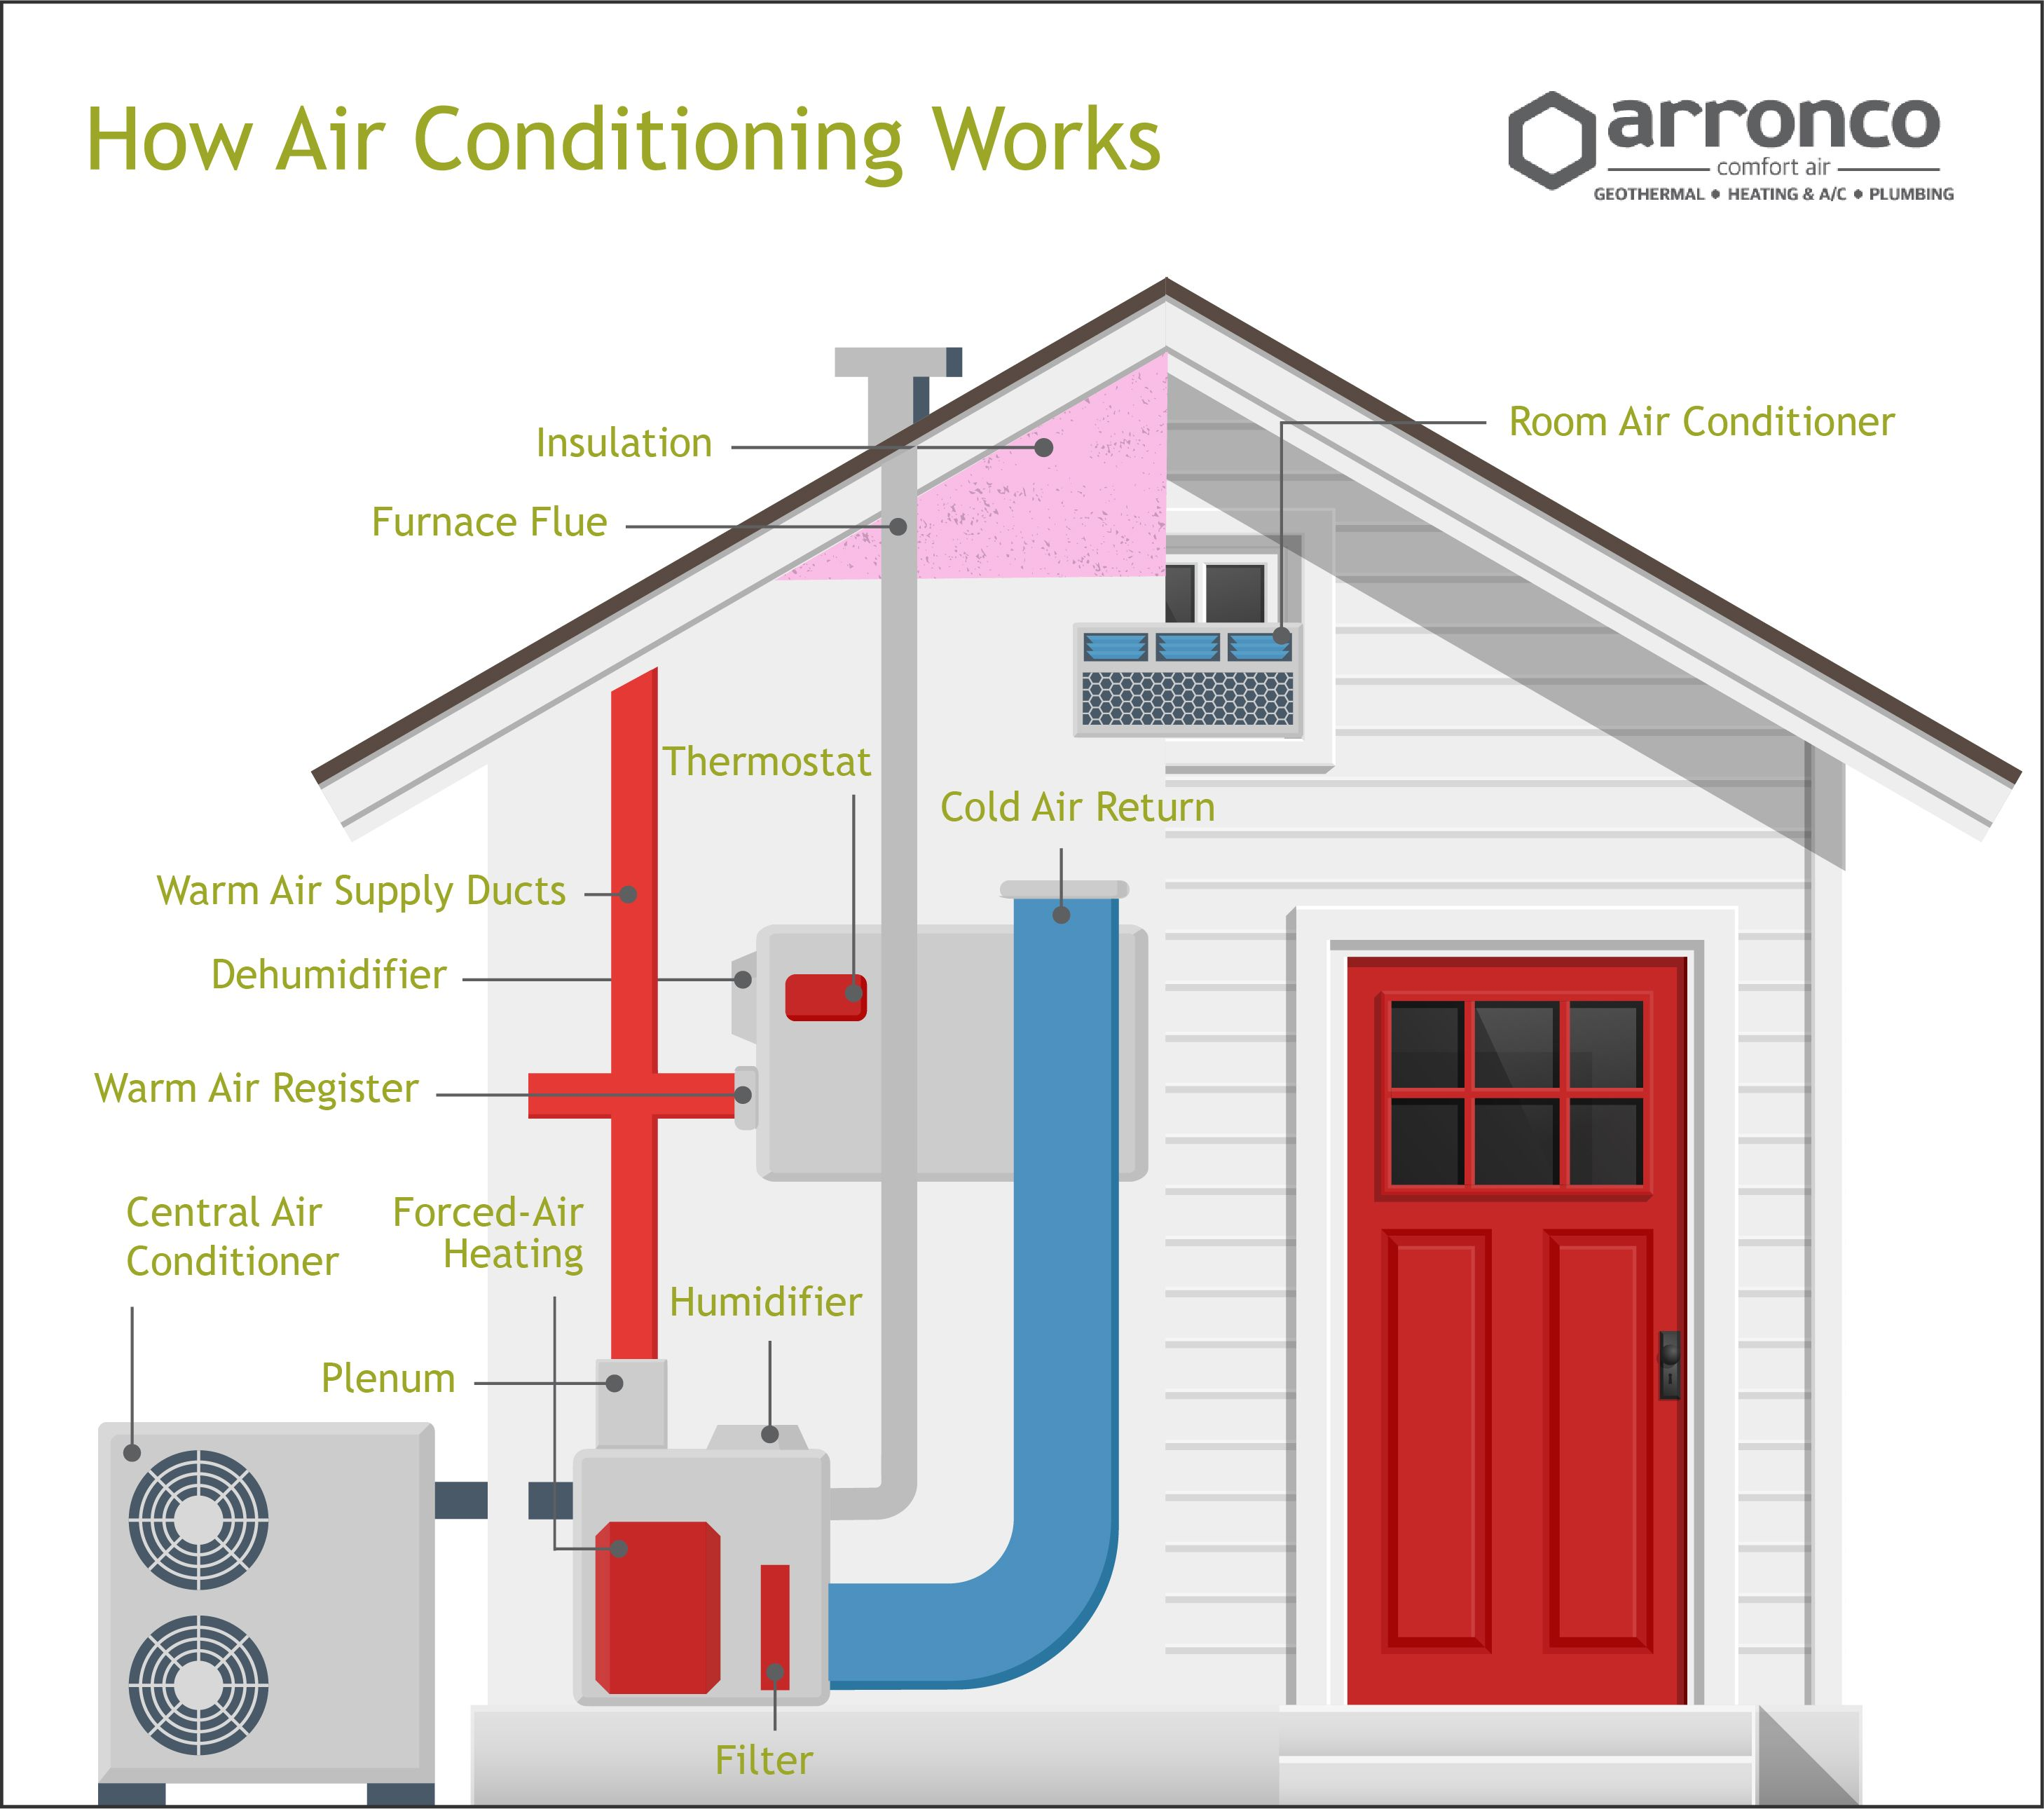 How air conditioning works in home, how air conditioner cools air